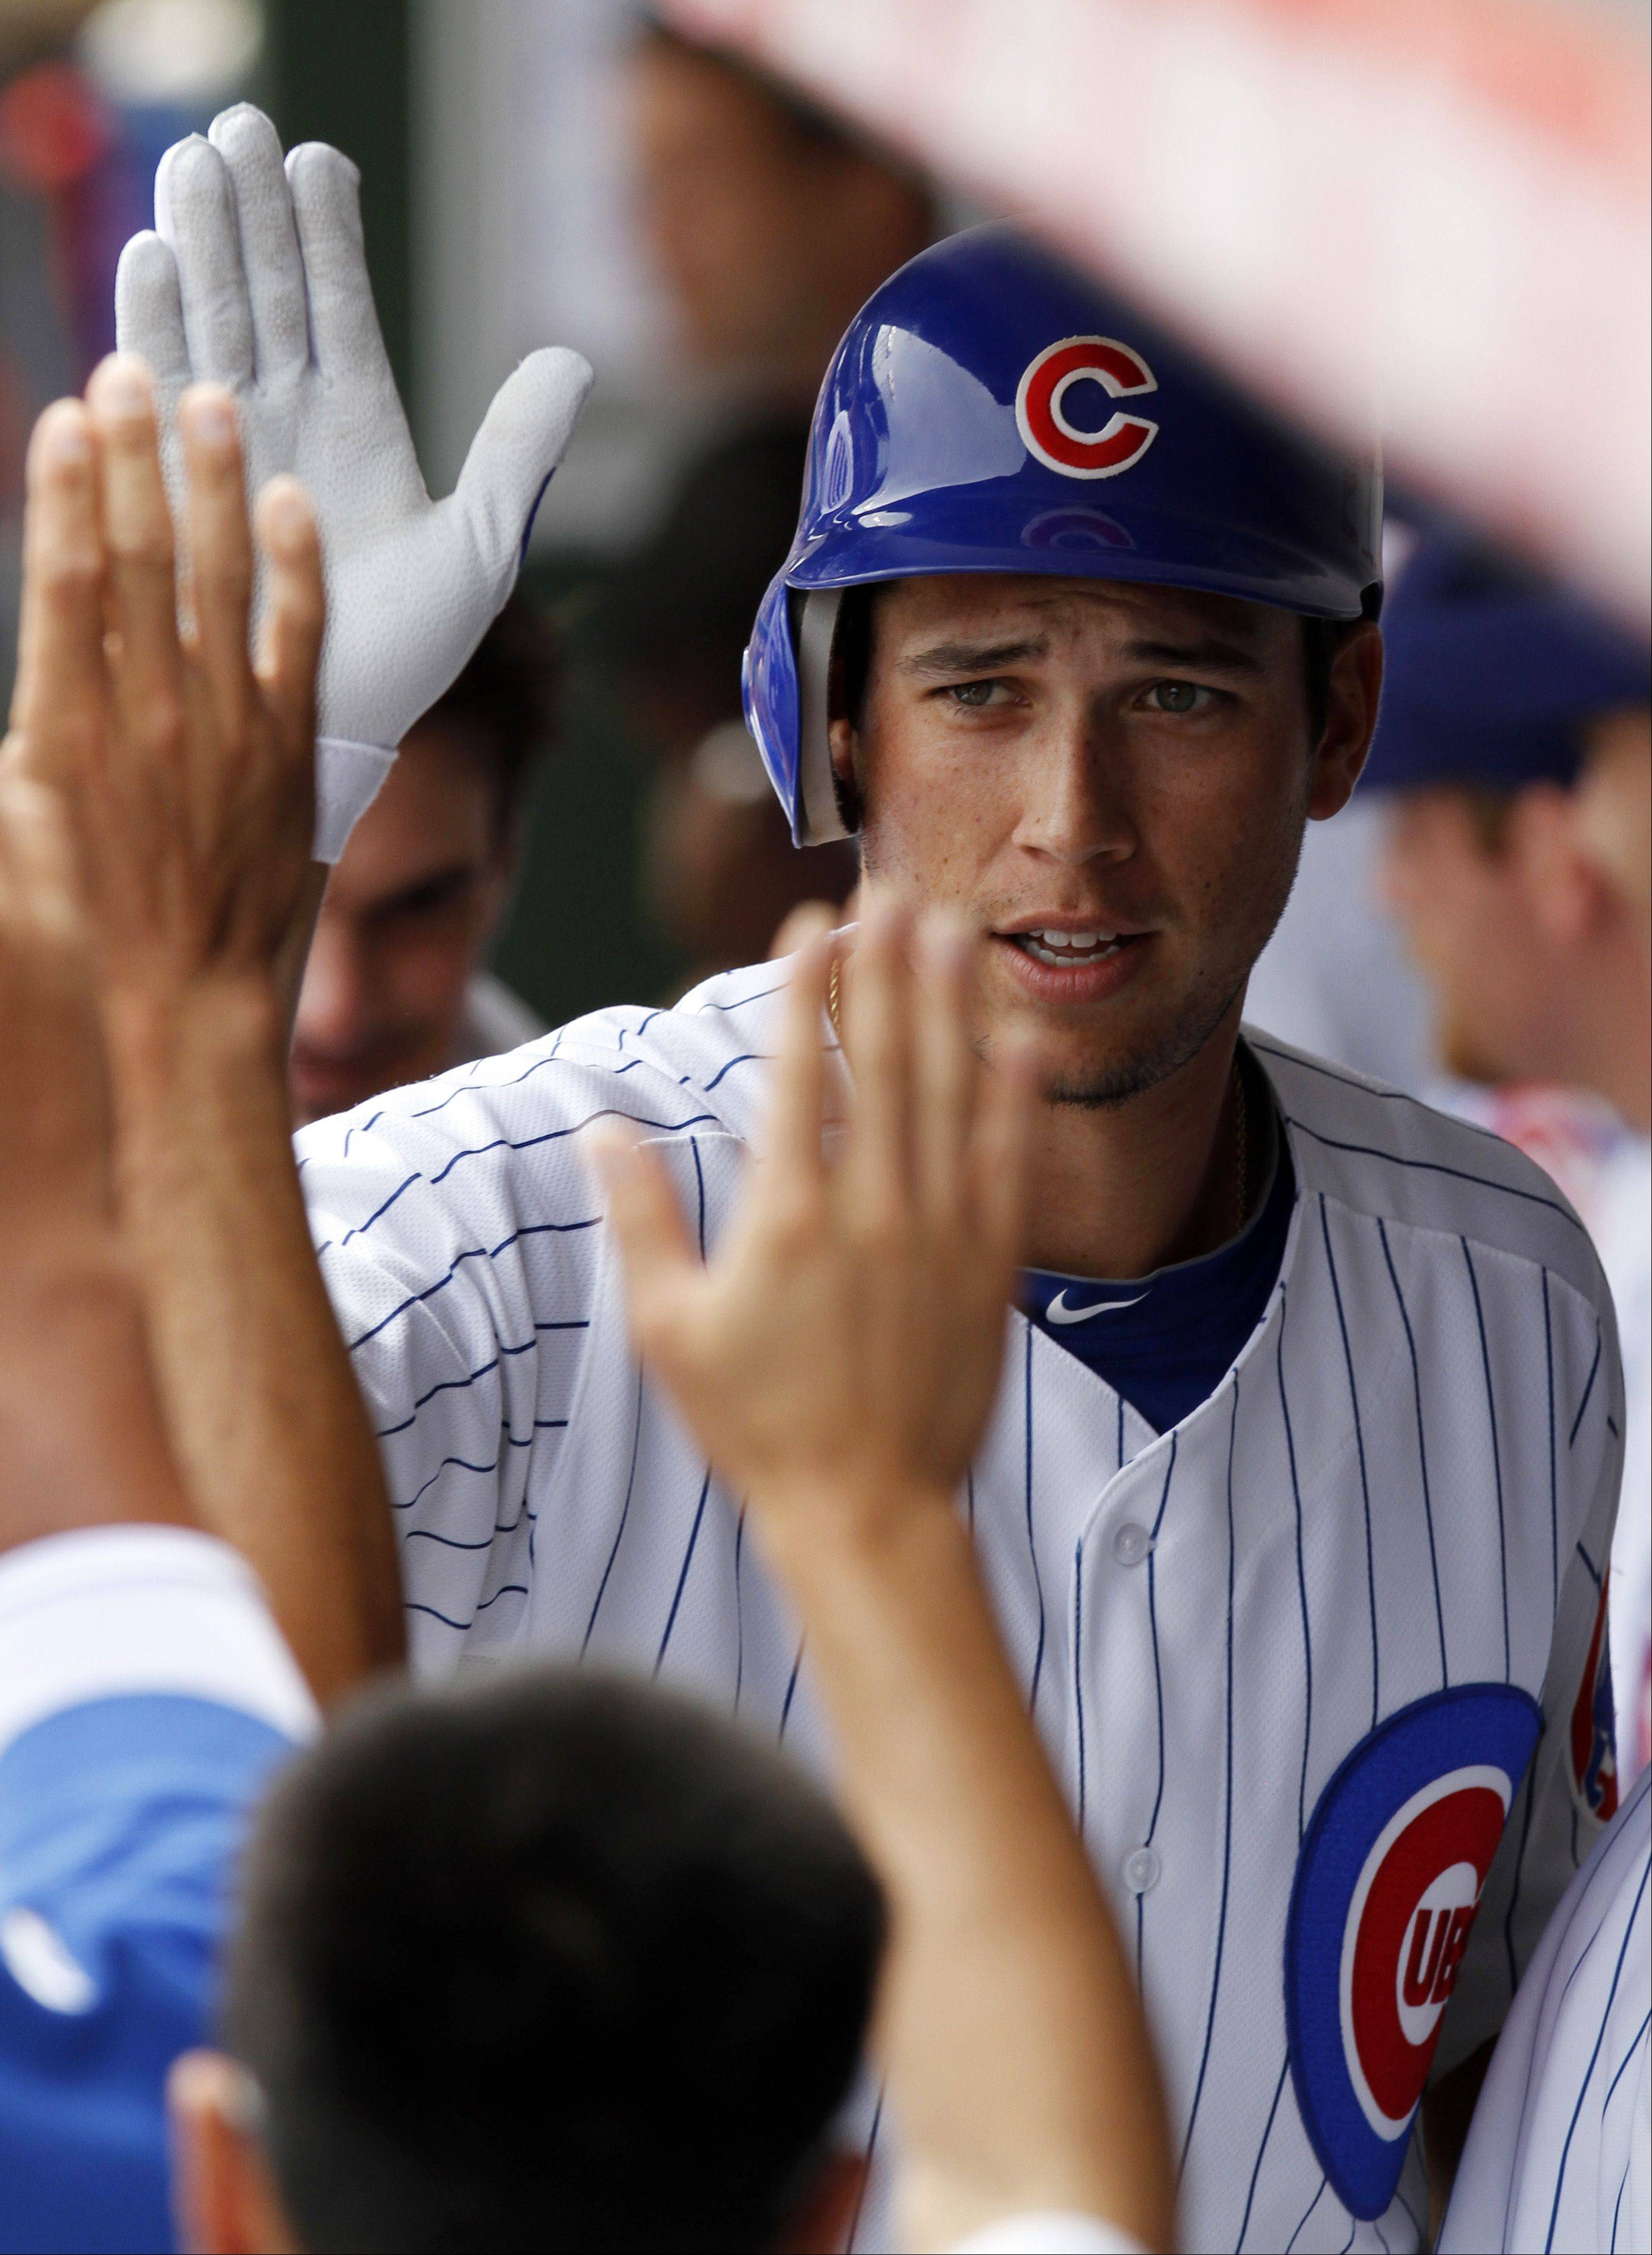 Chicago Cubs Tyler Colvin Celebrates With Teammates In The Dugout After Hitting A Solo Home